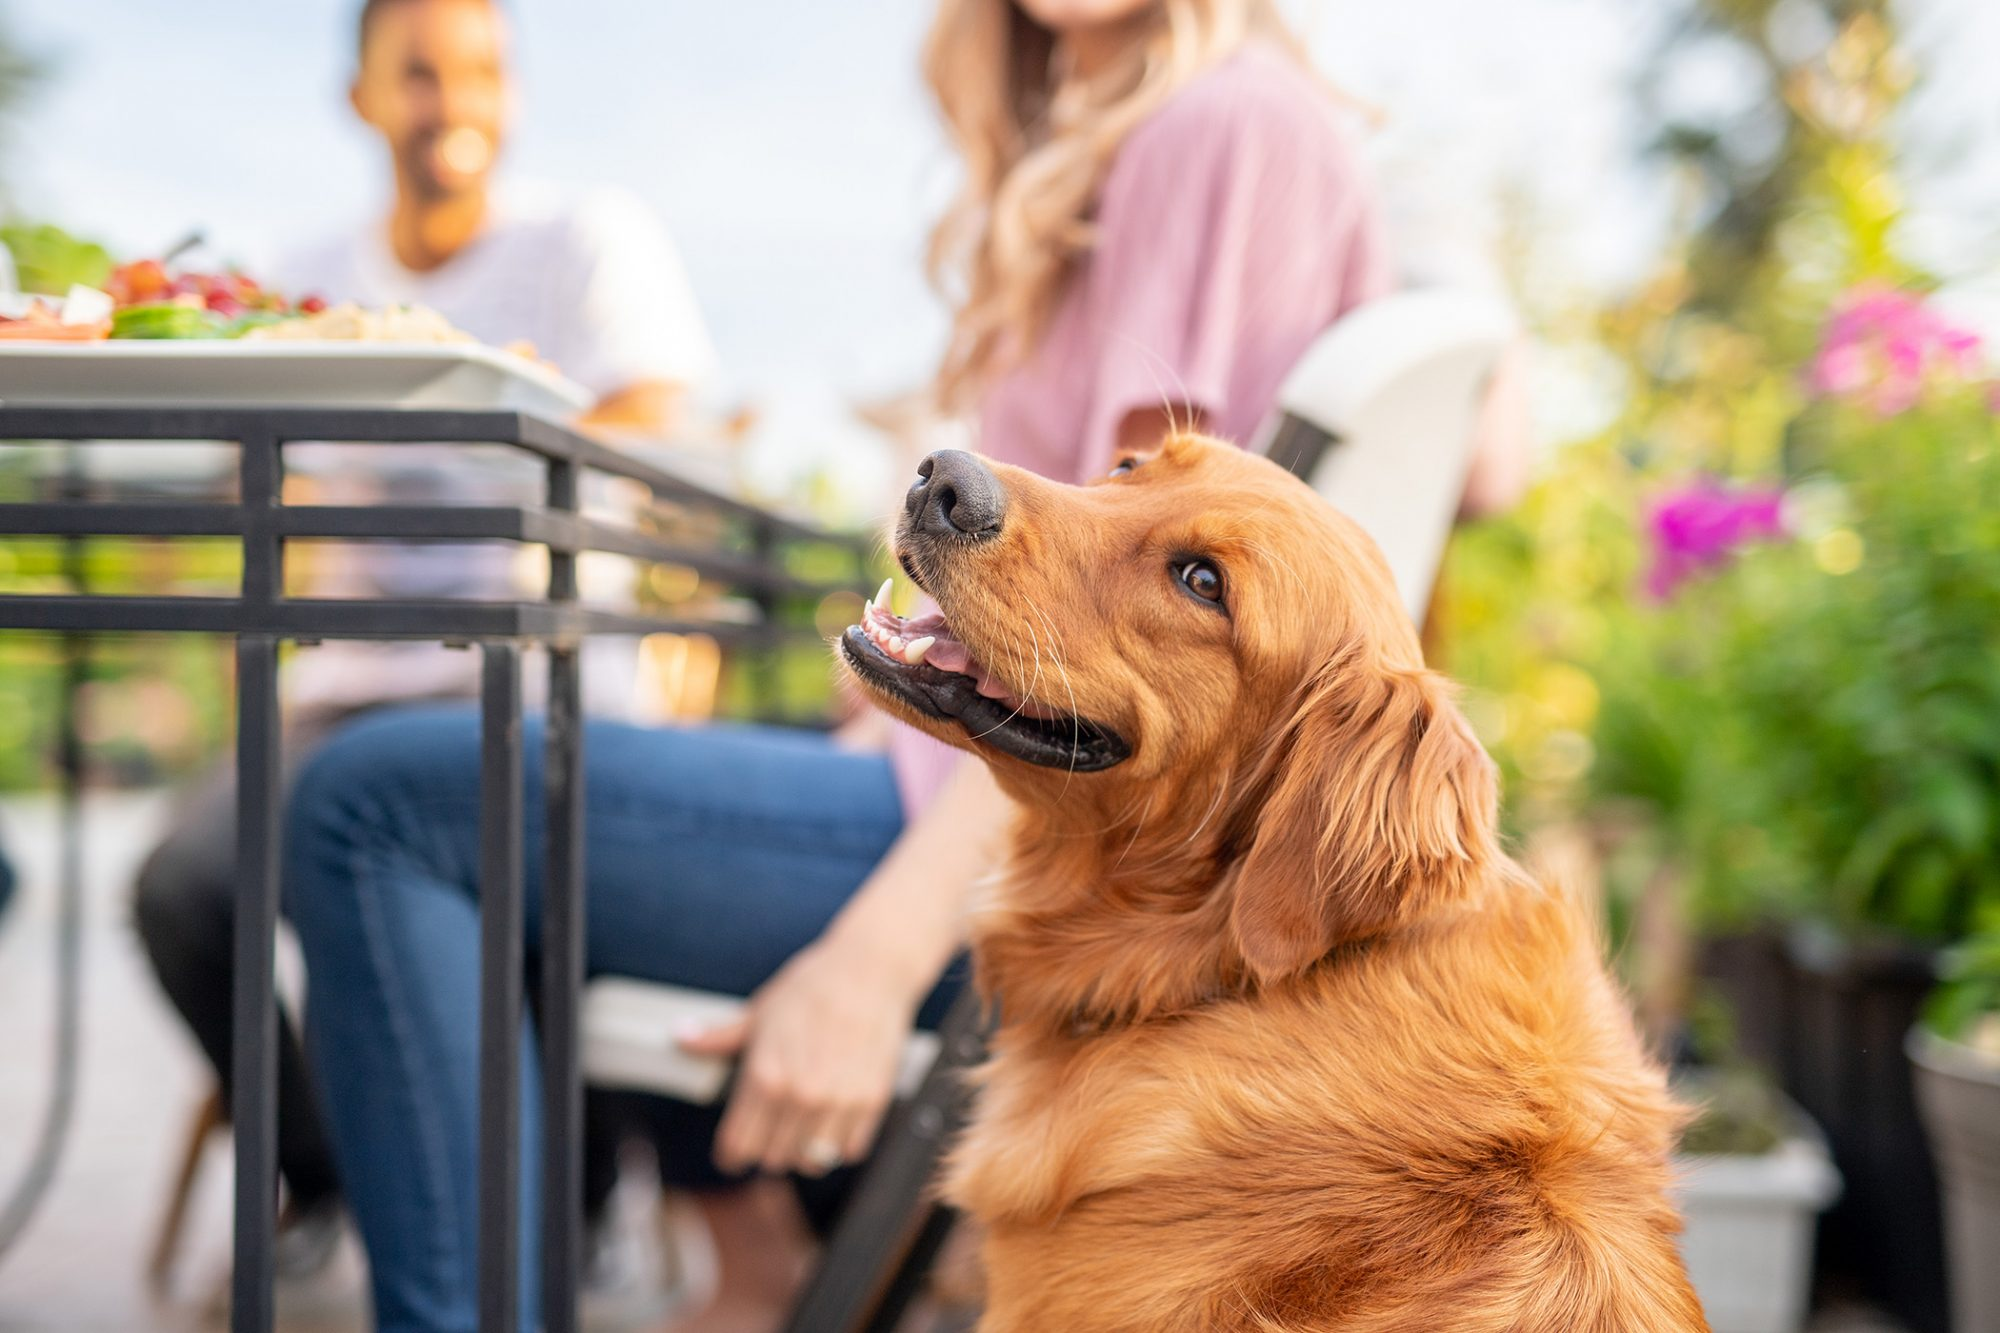 A group of young adult friends dining al fresco on a patio with Golden Retriever